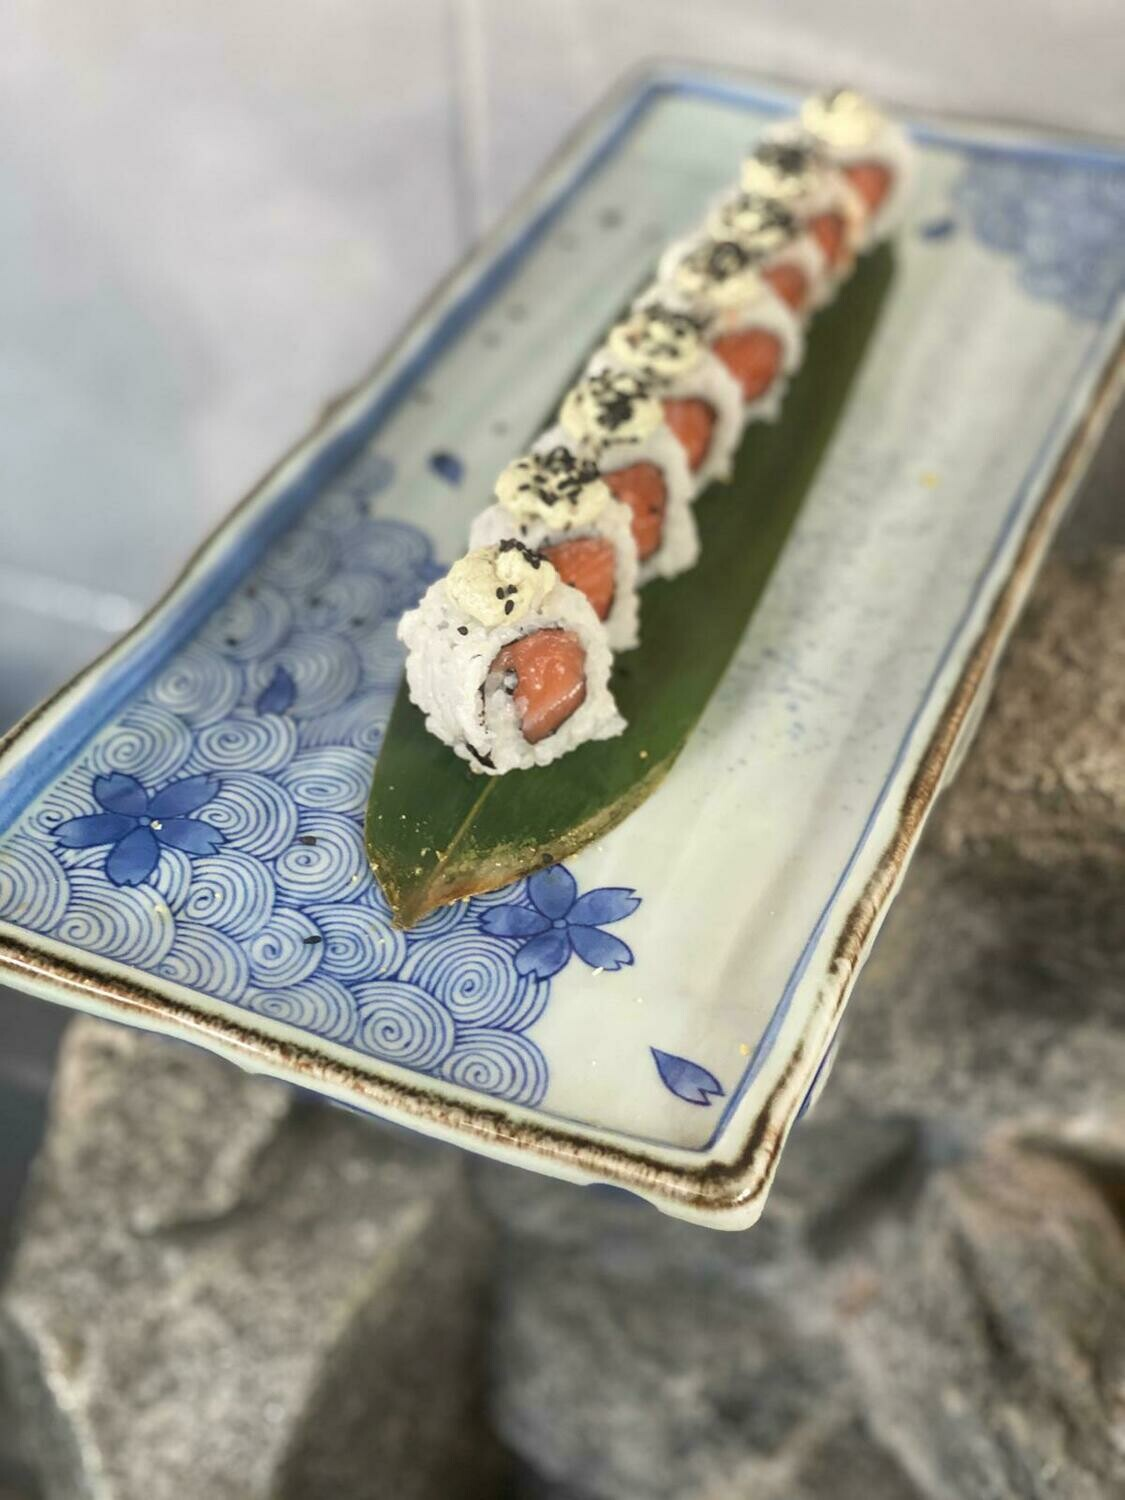 Uramaki Filetto di Salmone e Menta